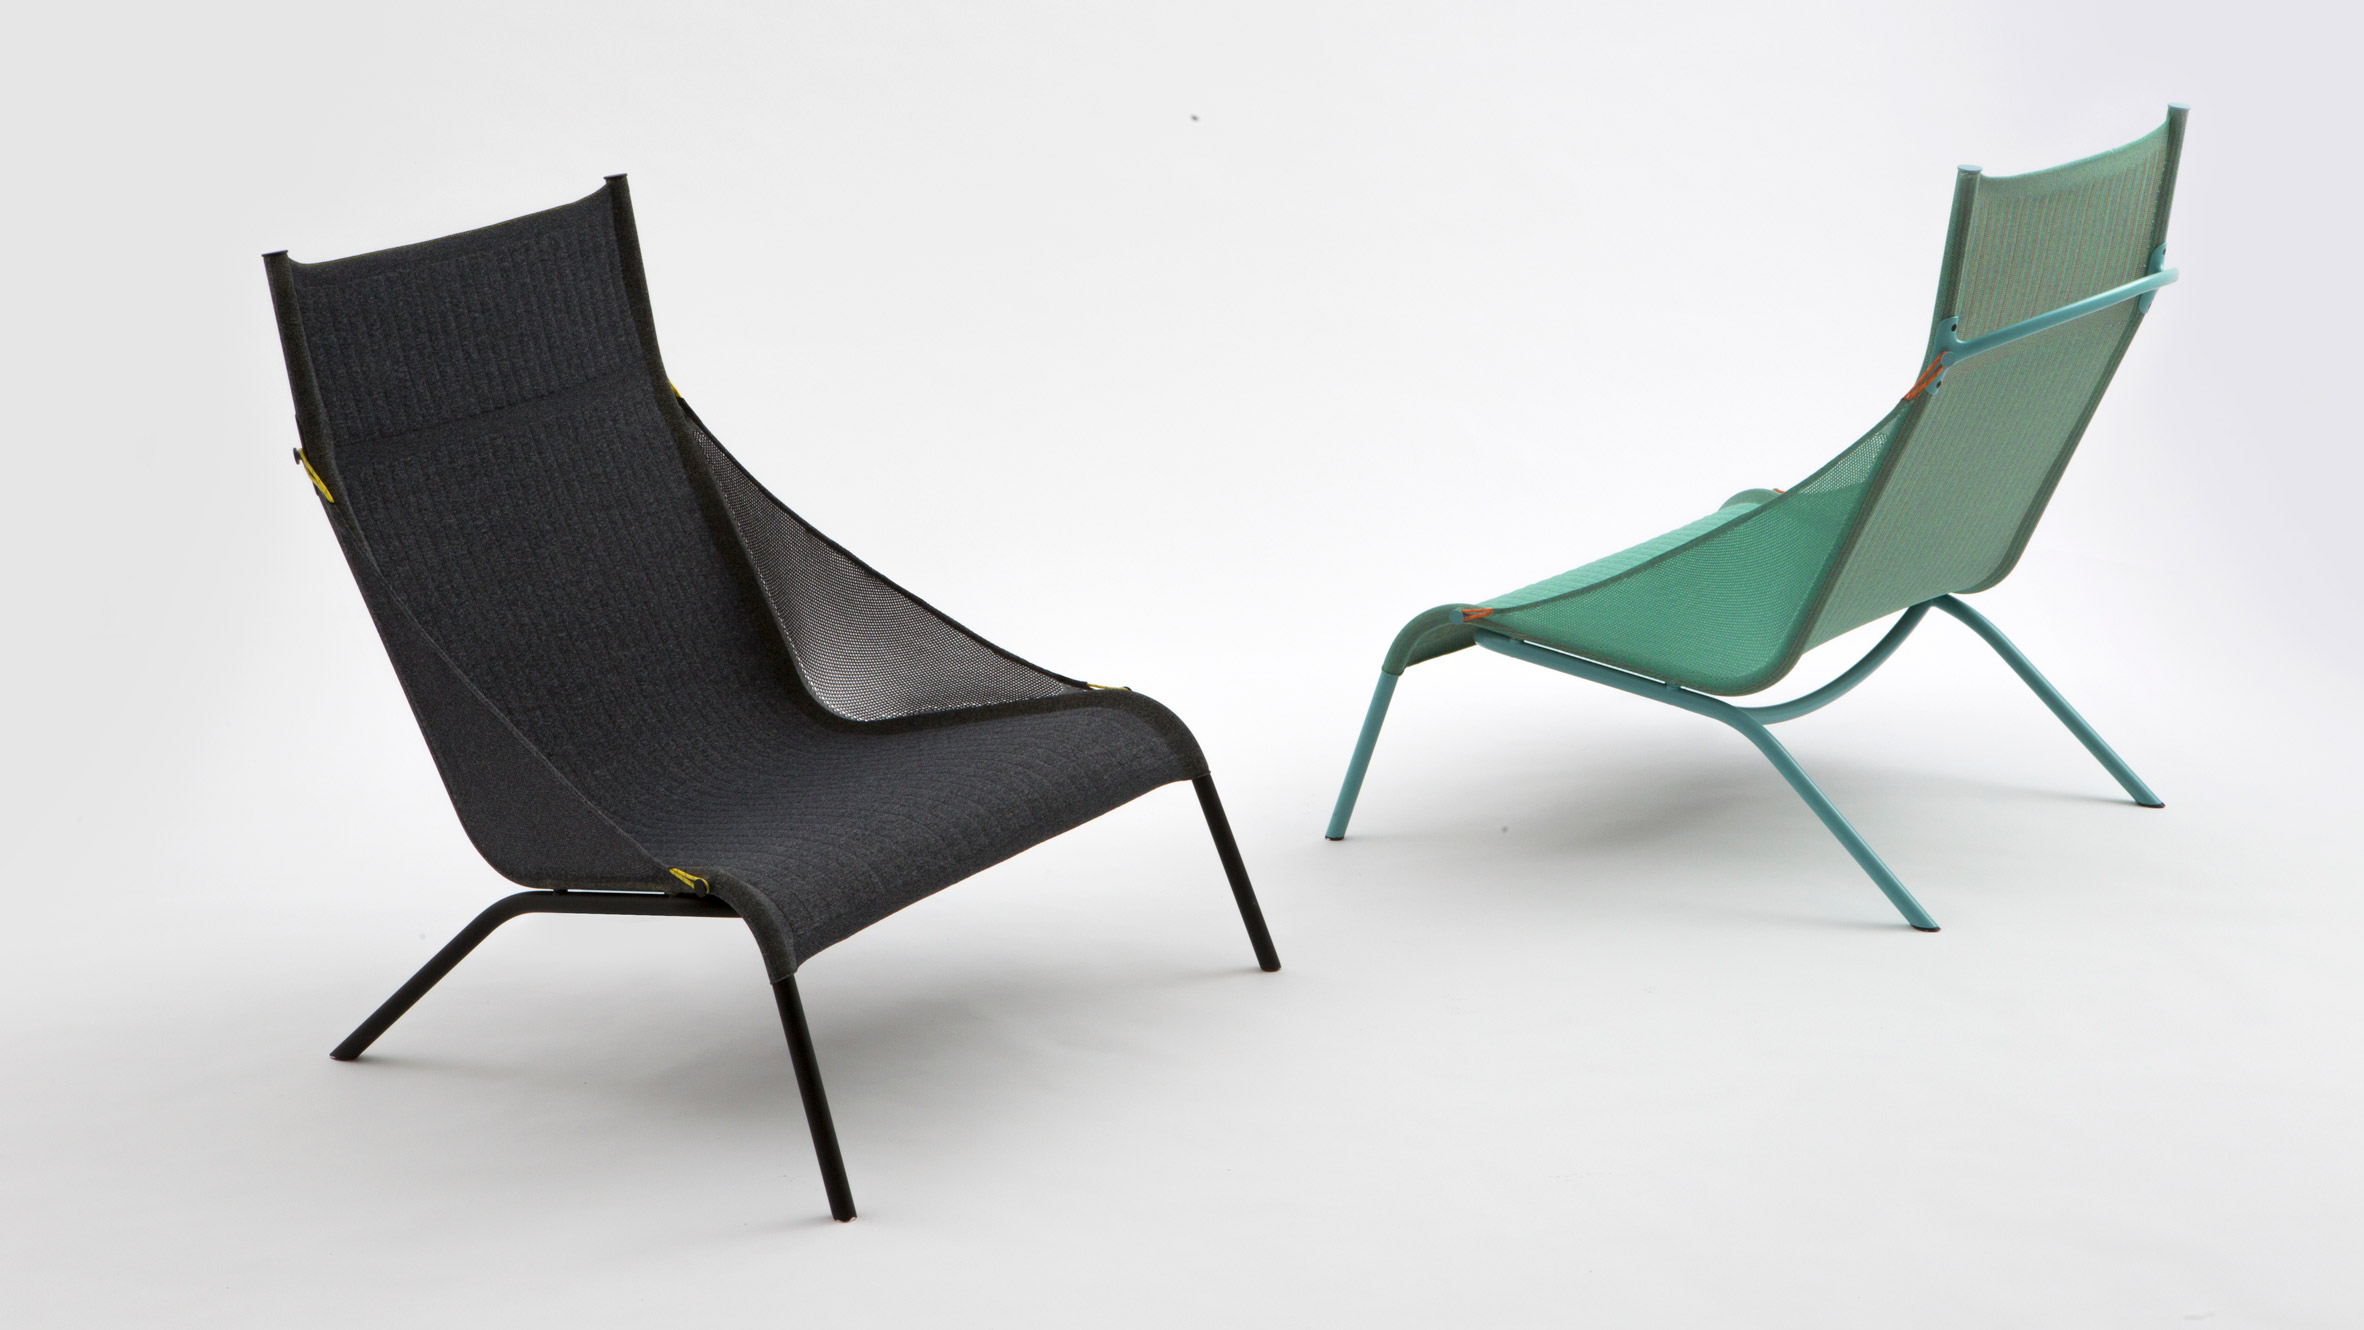 Benjamin Hubert s Tent chair for Moroso is made from knitted nylon